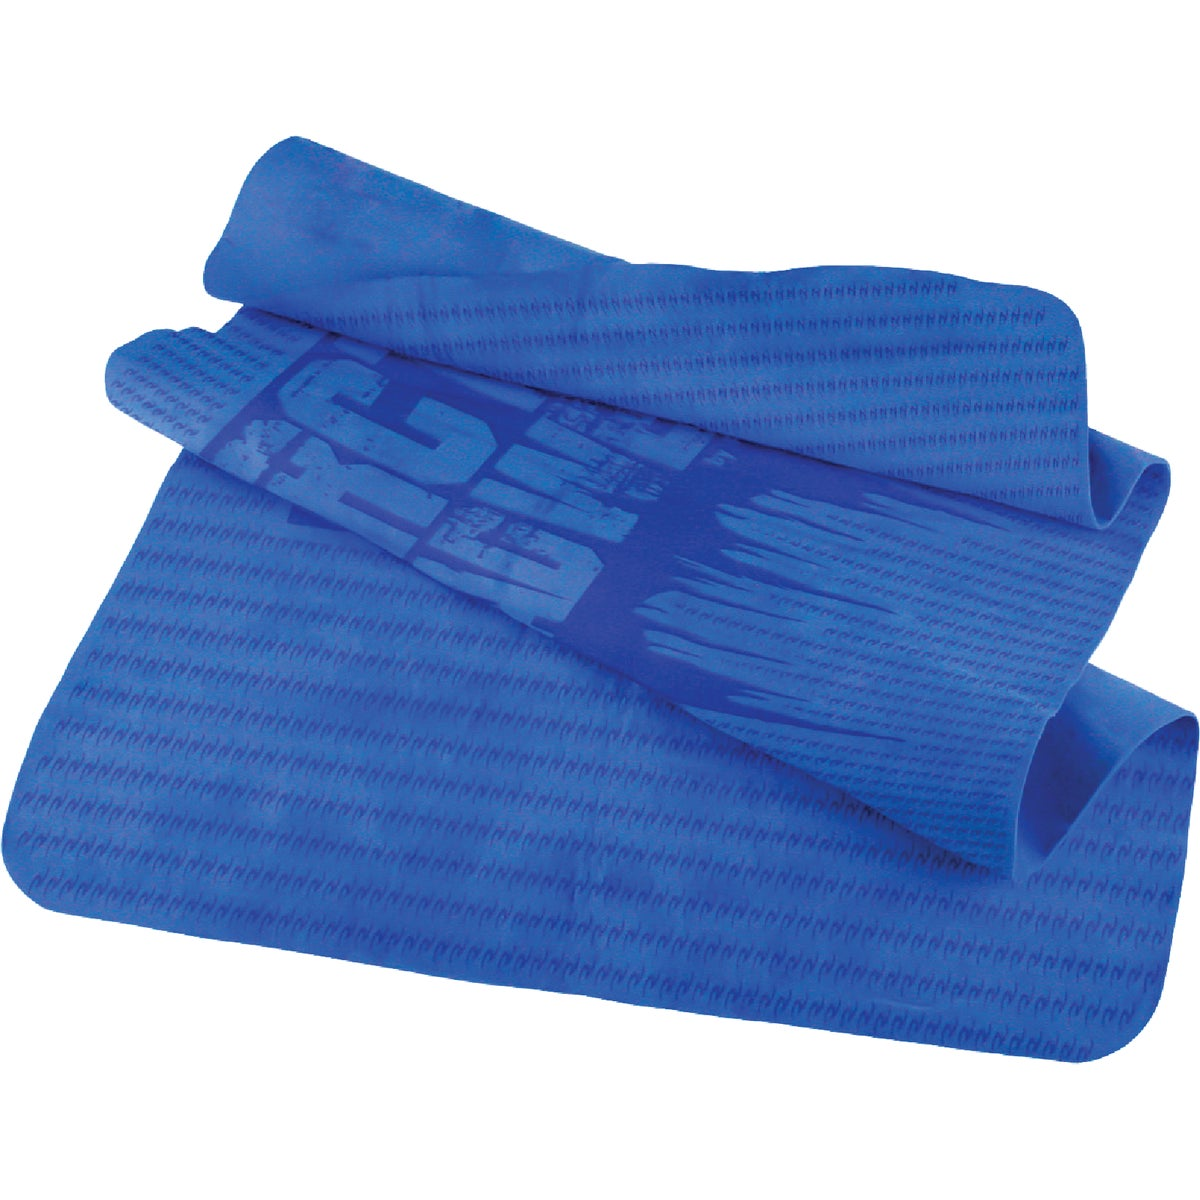 CHILL-ITS COOLING TOWEL - 12420 by Ergodyne Incom